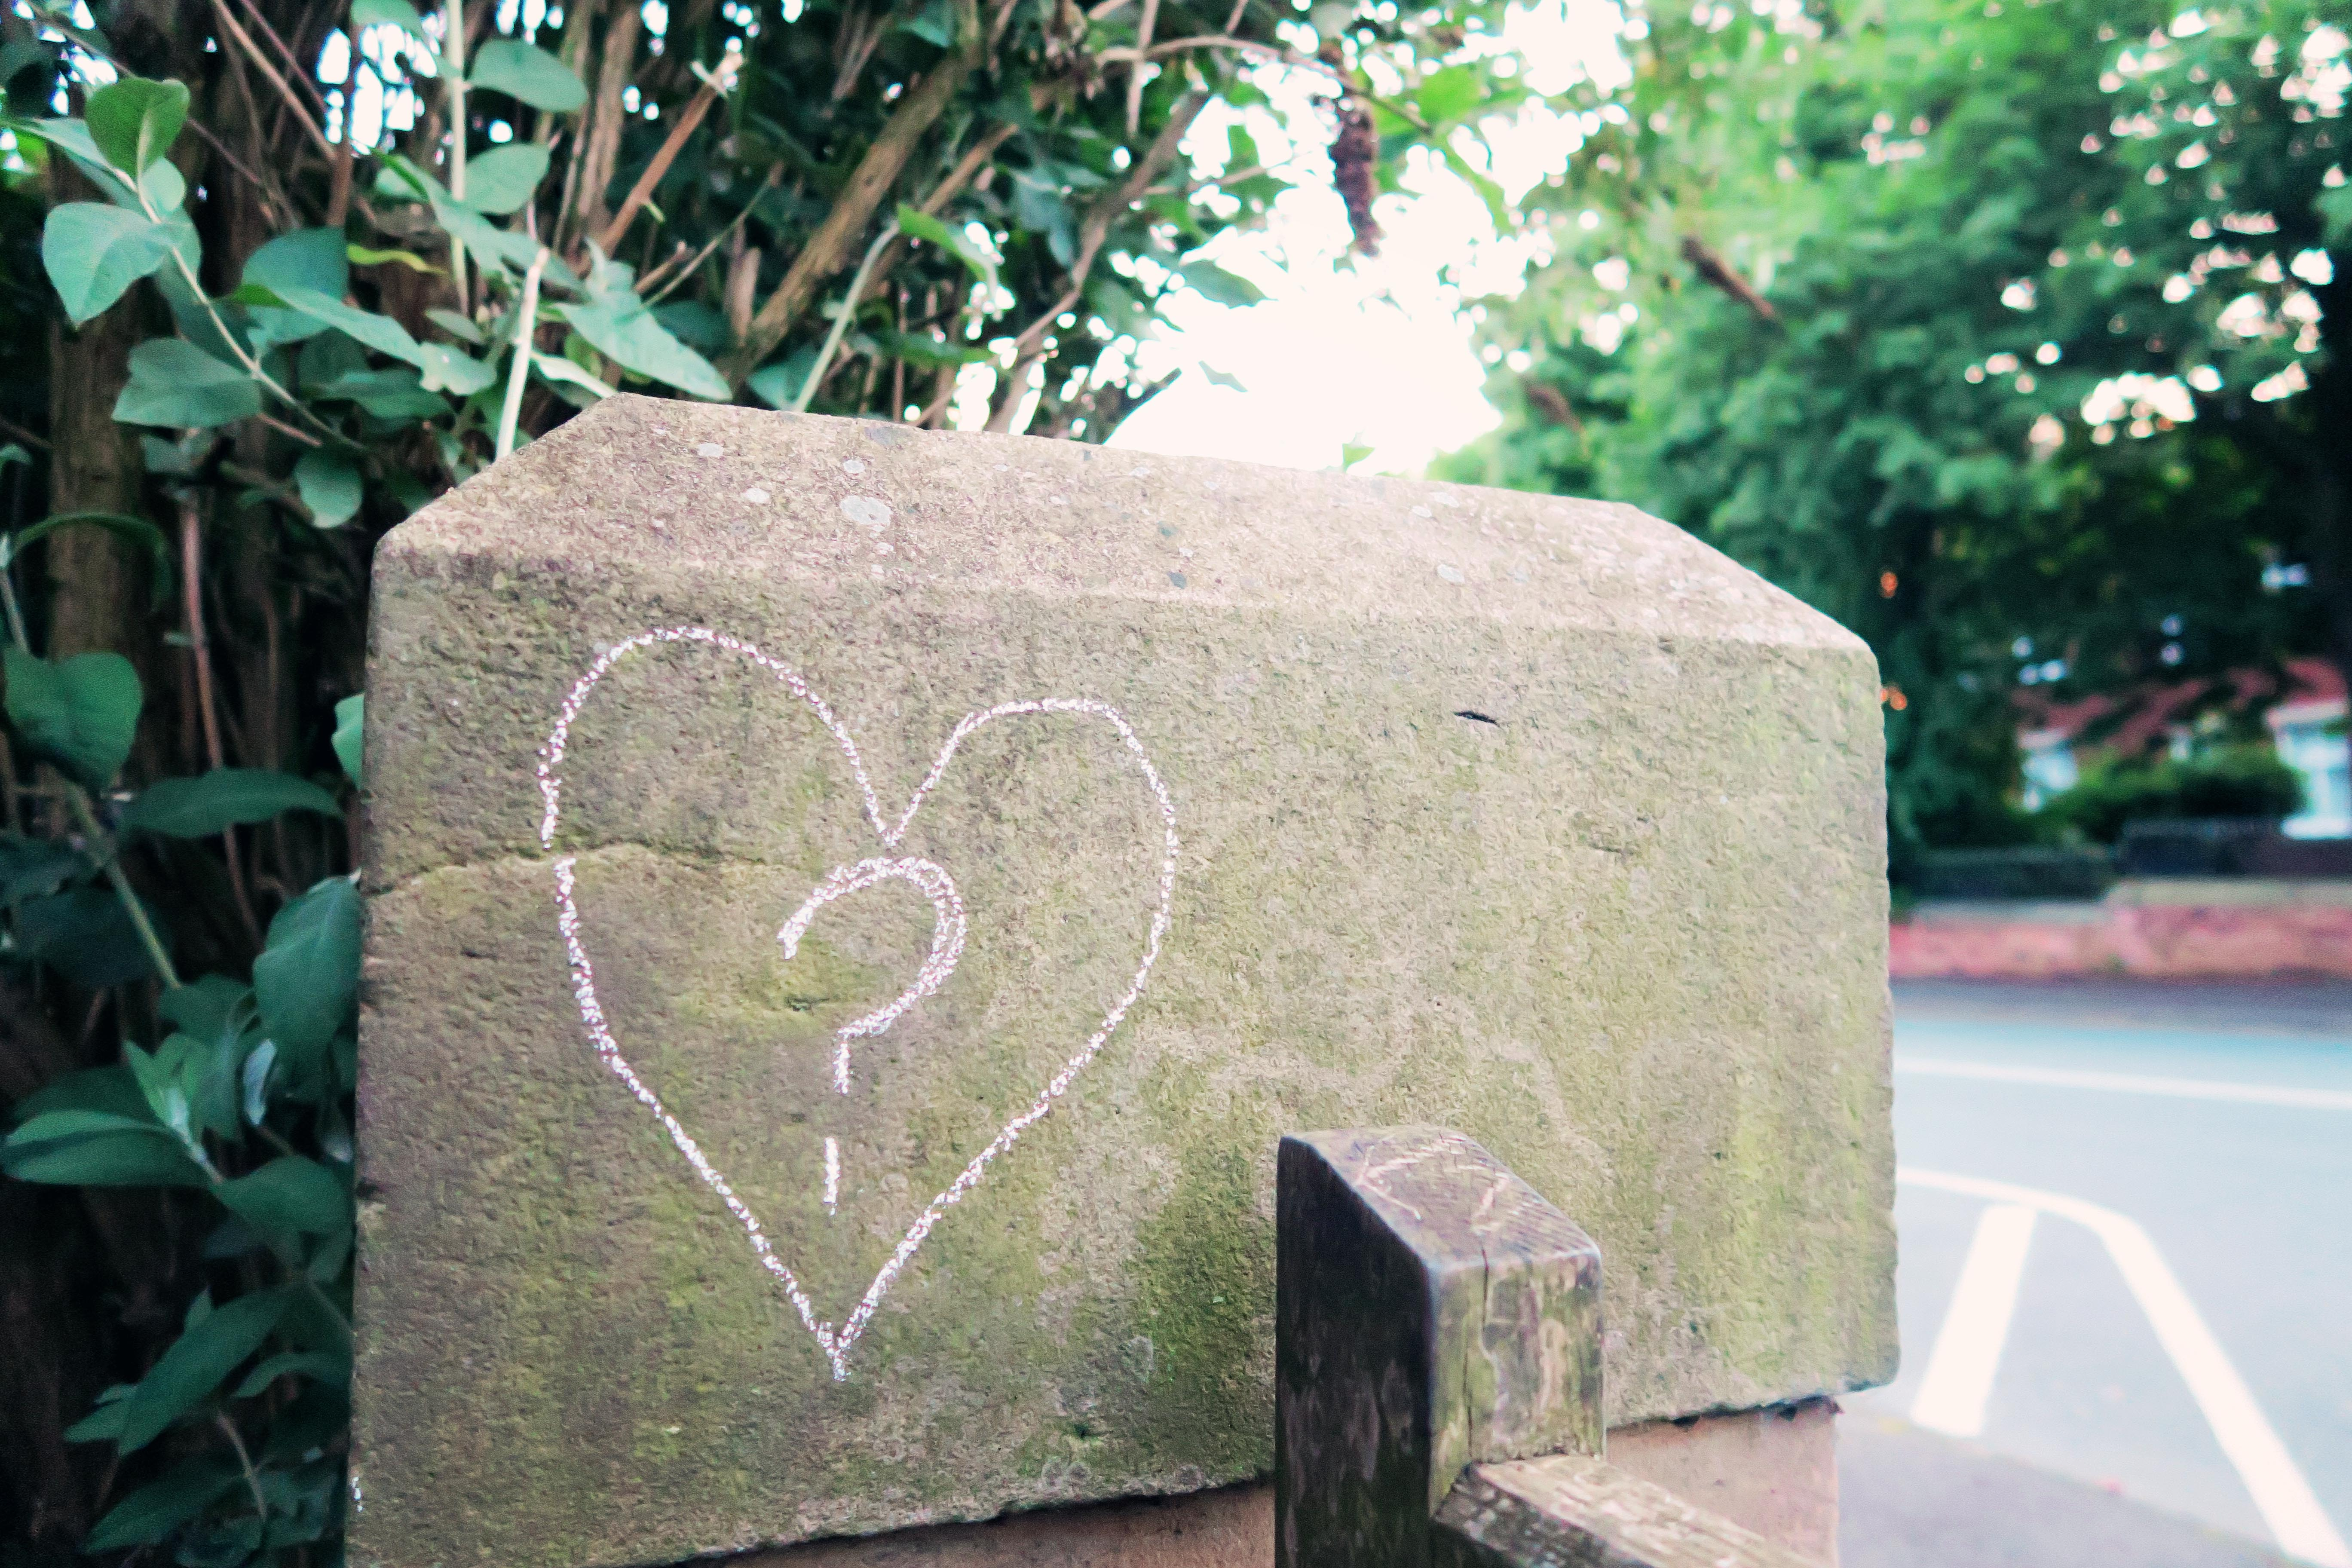 Heart drawn in chalk on gatepost